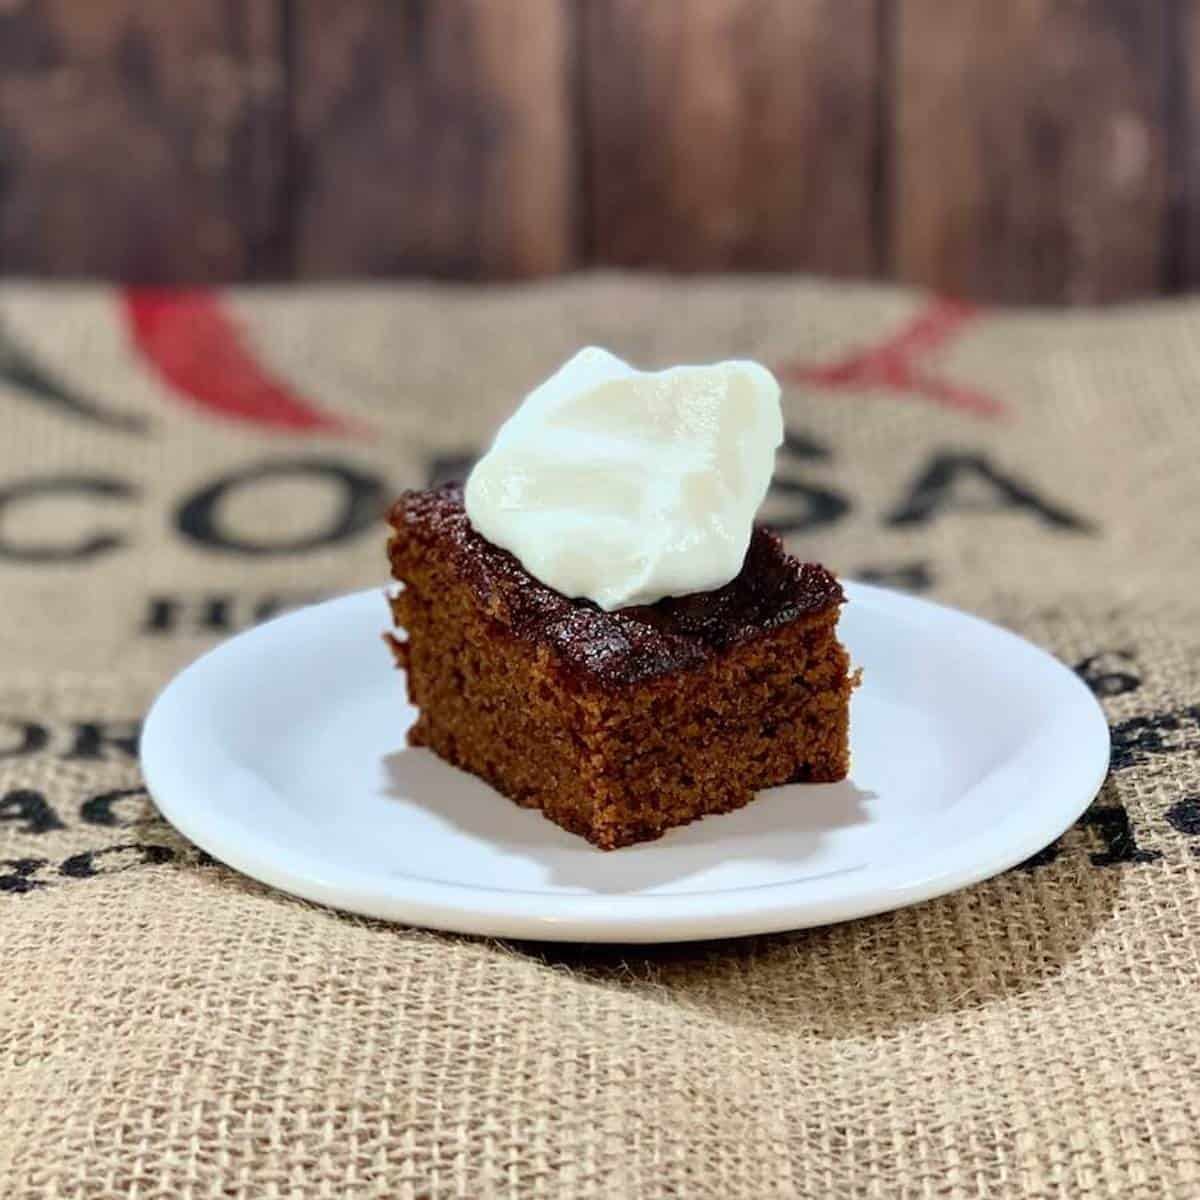 Sourdough gingerbread plated with whipped cream.